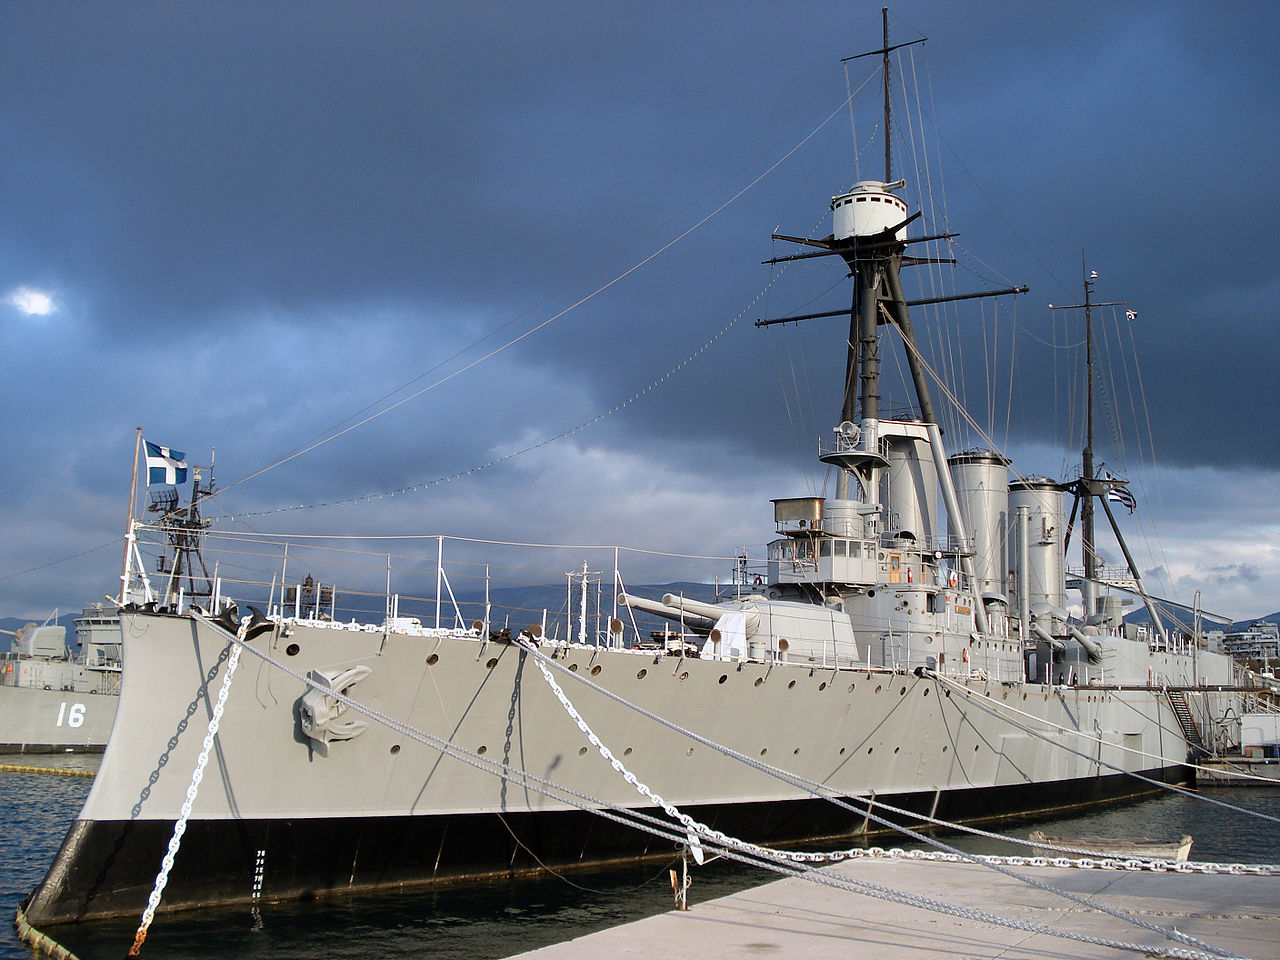 https://upload.wikimedia.org/wikipedia/commons/thumb/e/e5/Averof_Today2.jpg/1280px-Averof_Today2.jpg